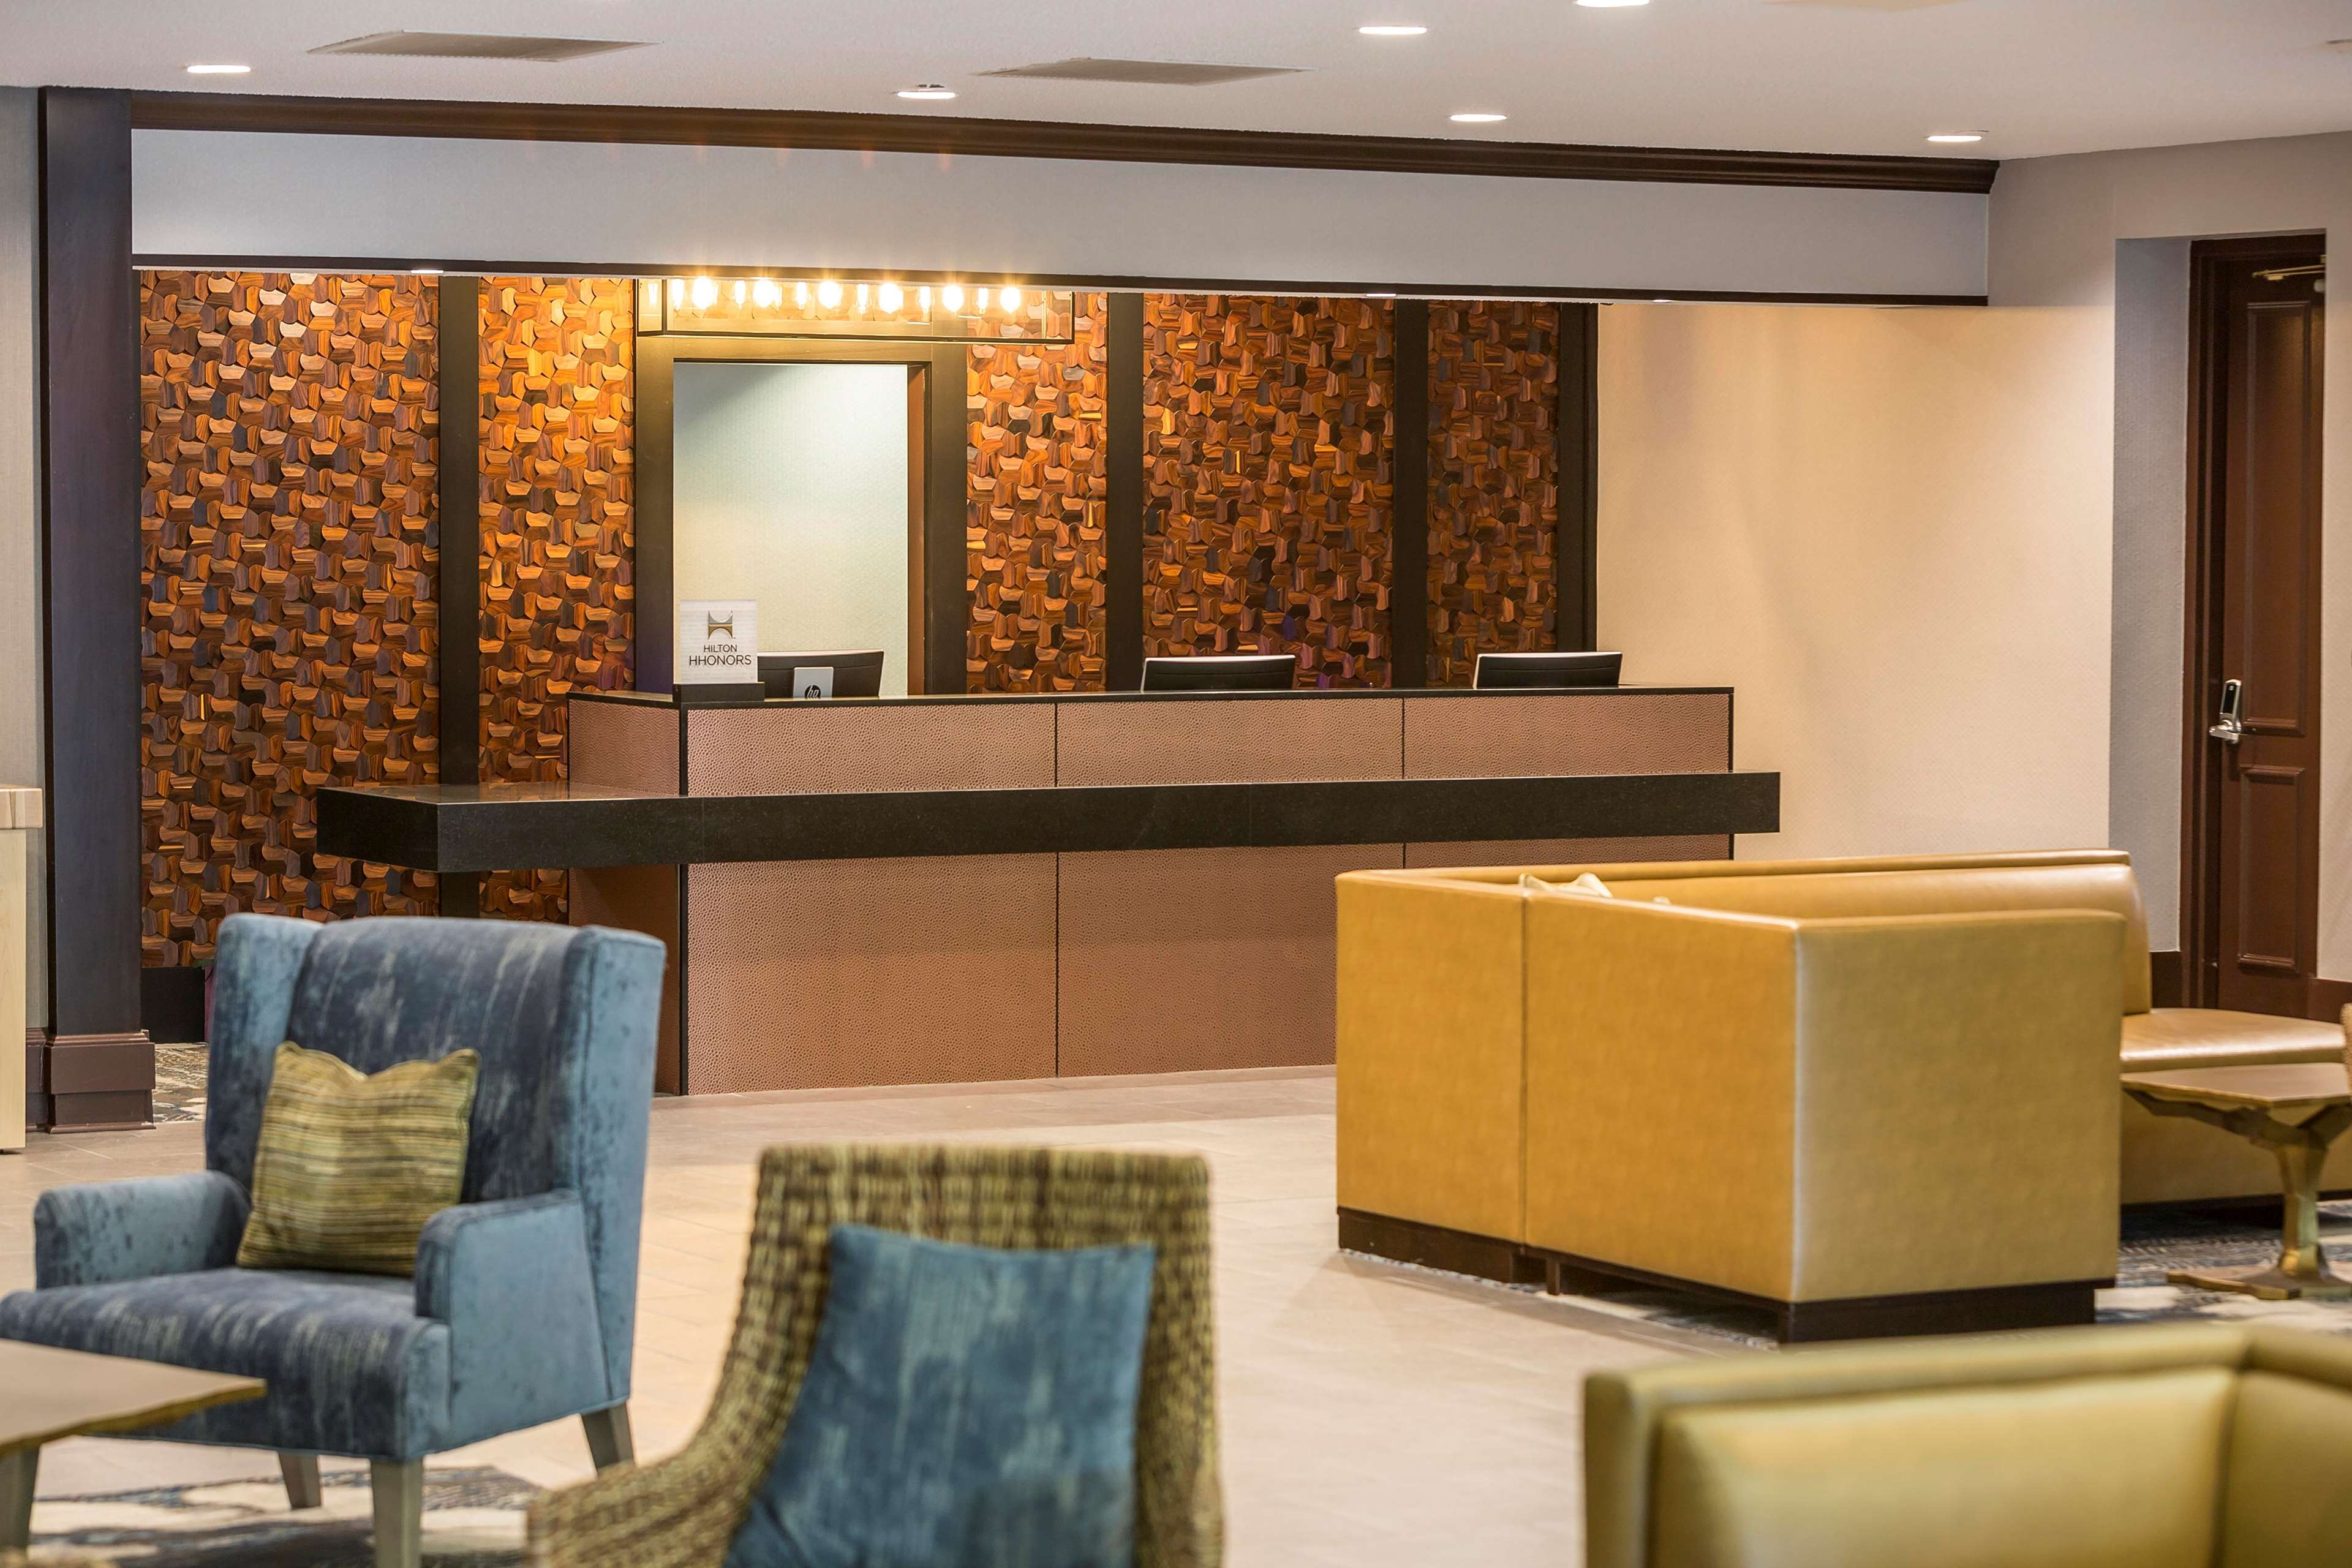 DoubleTree by Hilton Boston - Andover image 43